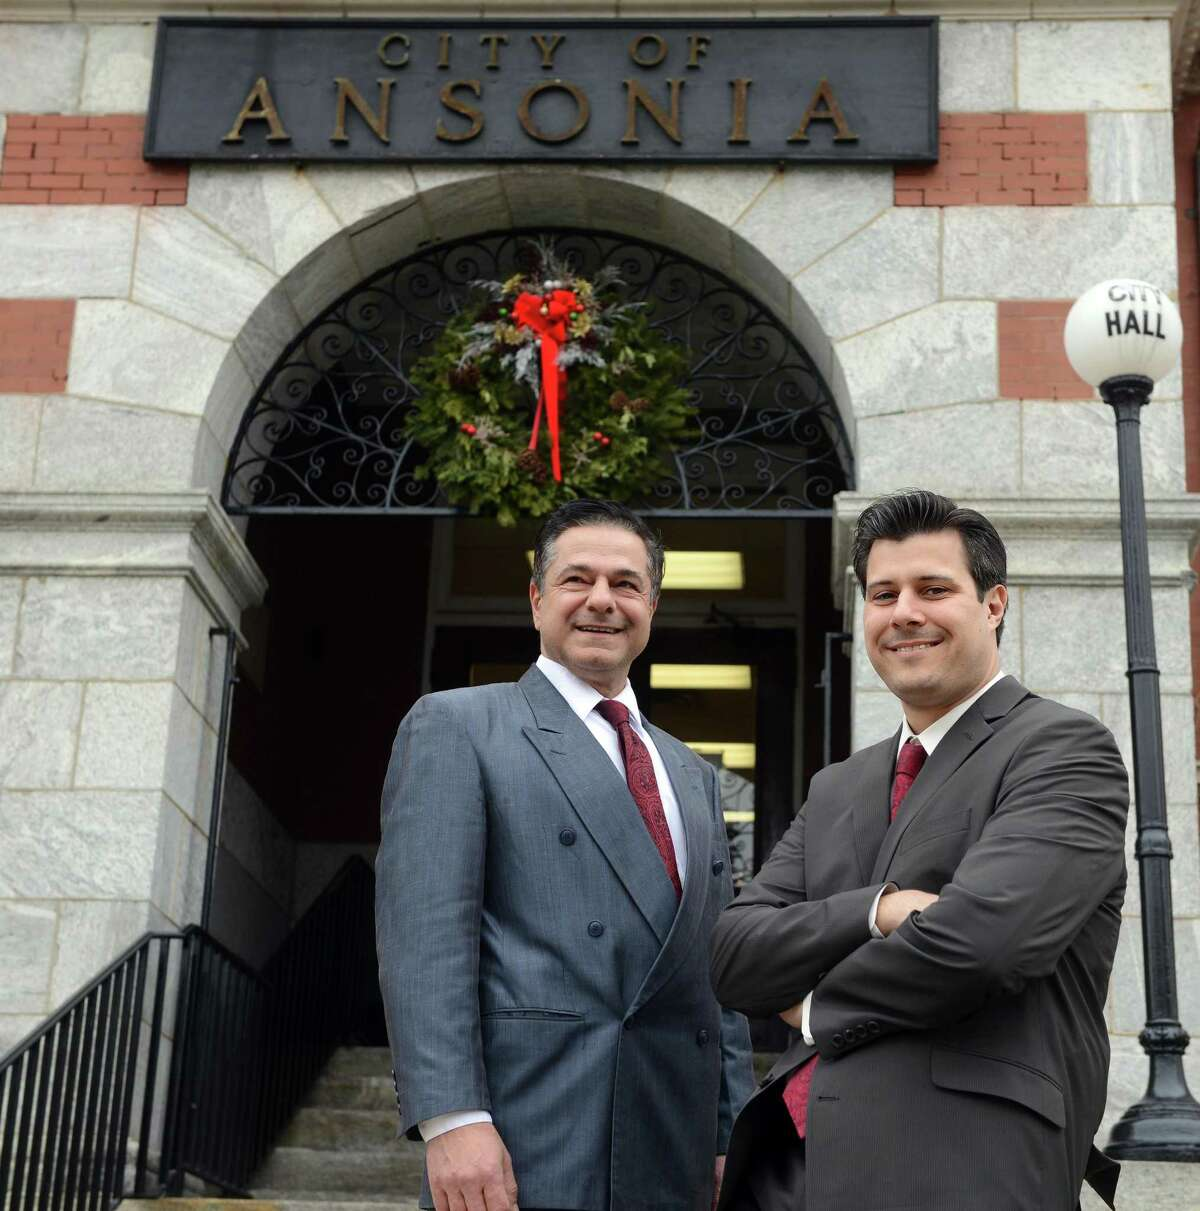 Ansonia Mayor David Cassetti and Corporation Counsel John P. Marini will be meeting with Eversource officials in an attempt to obtain rebates for customers impacted by this week's natural gas outage.